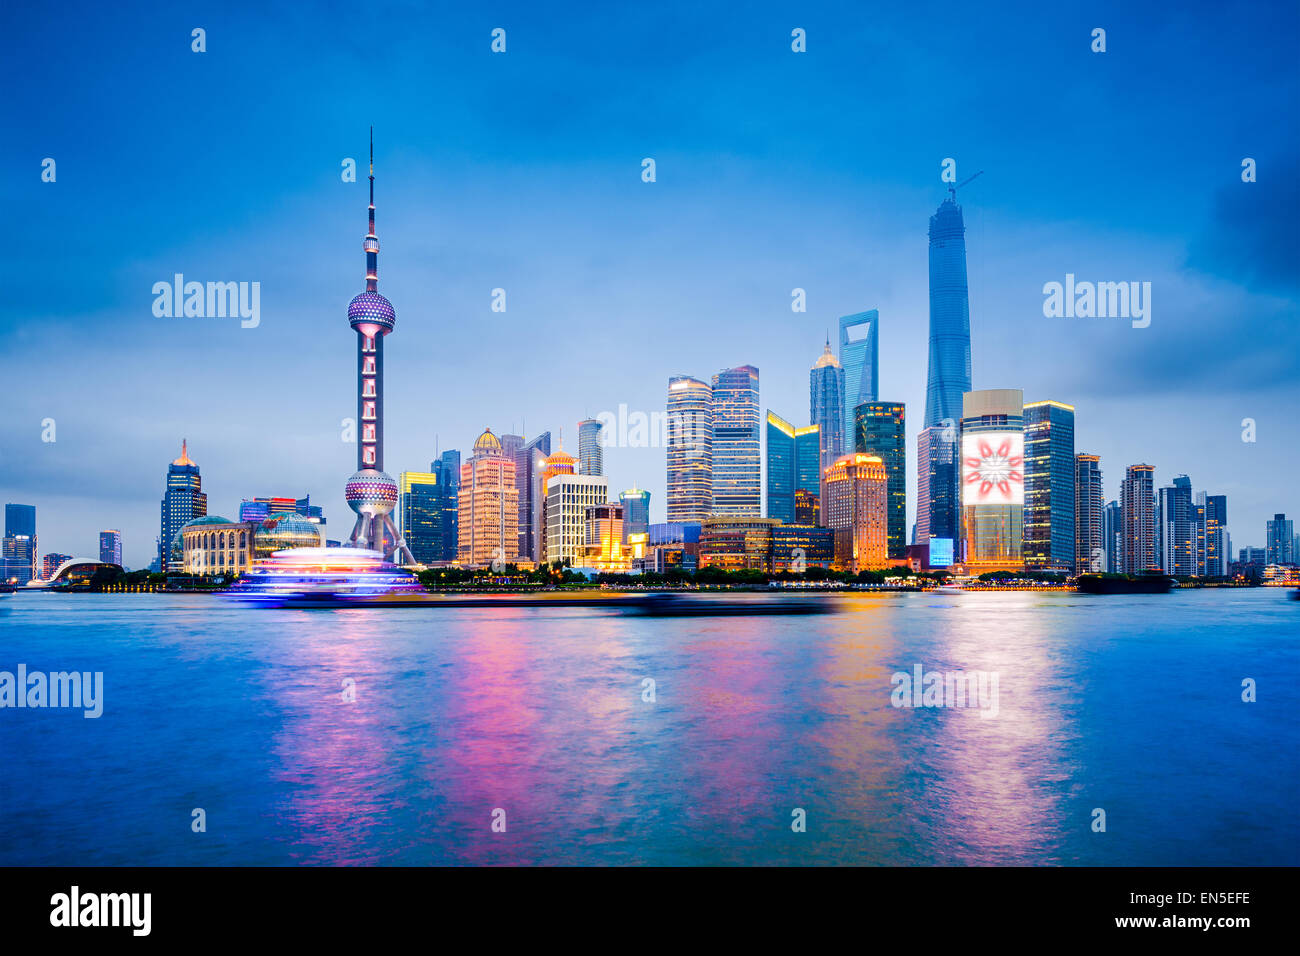 Shanghai, Chine financial district skyline sur la rivière Huangpu. Photo Stock